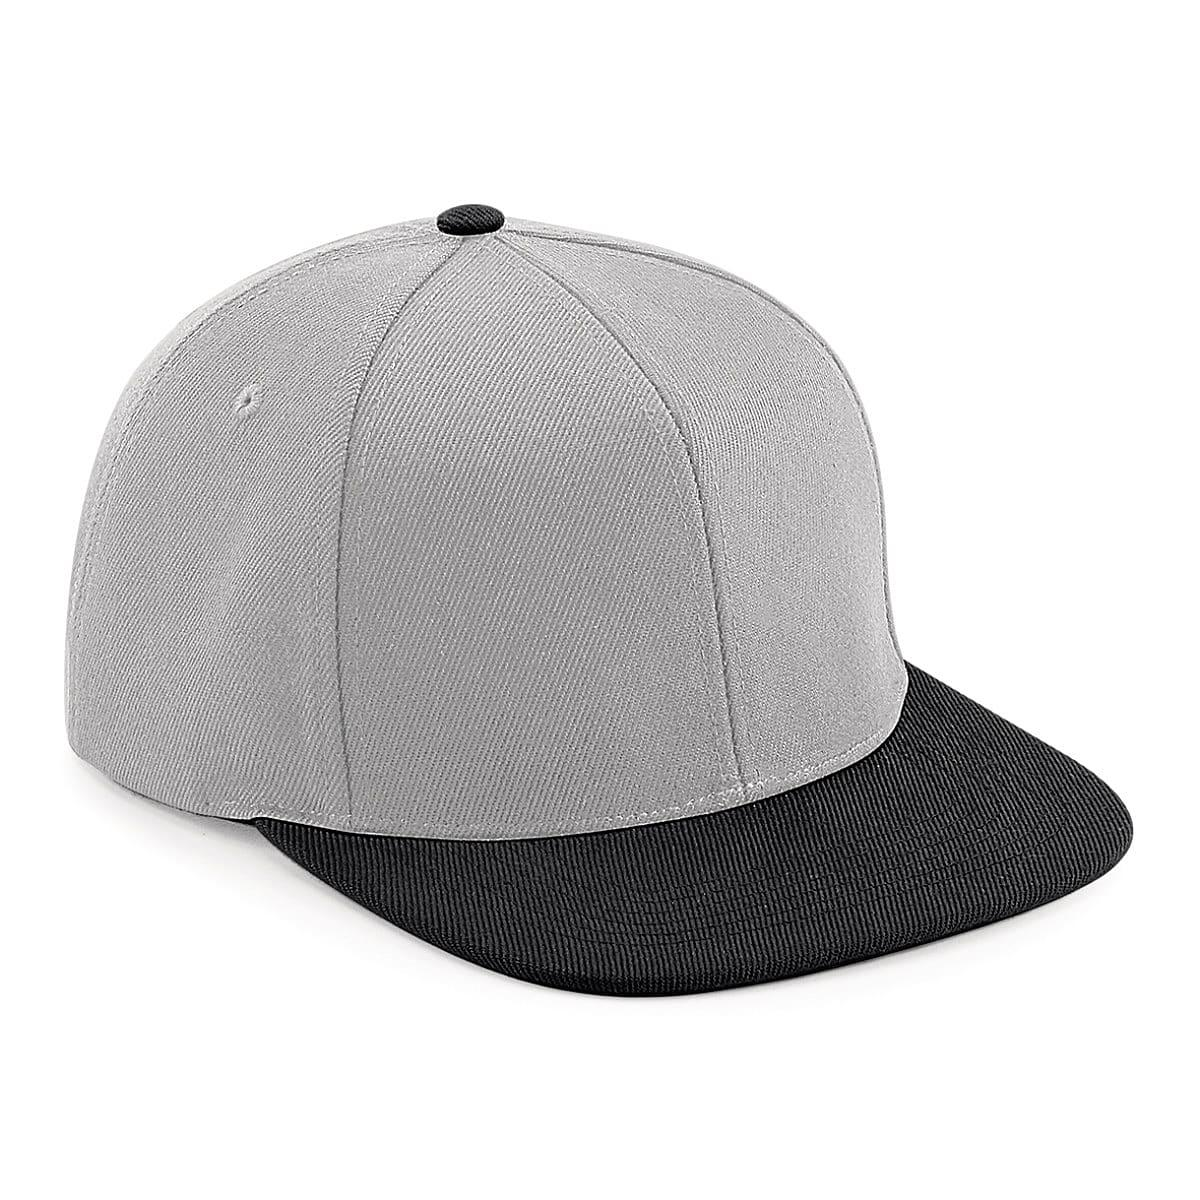 Original Flat Peak 6 Panel Snapback Cap in Grey / Black (Product Code: B661)